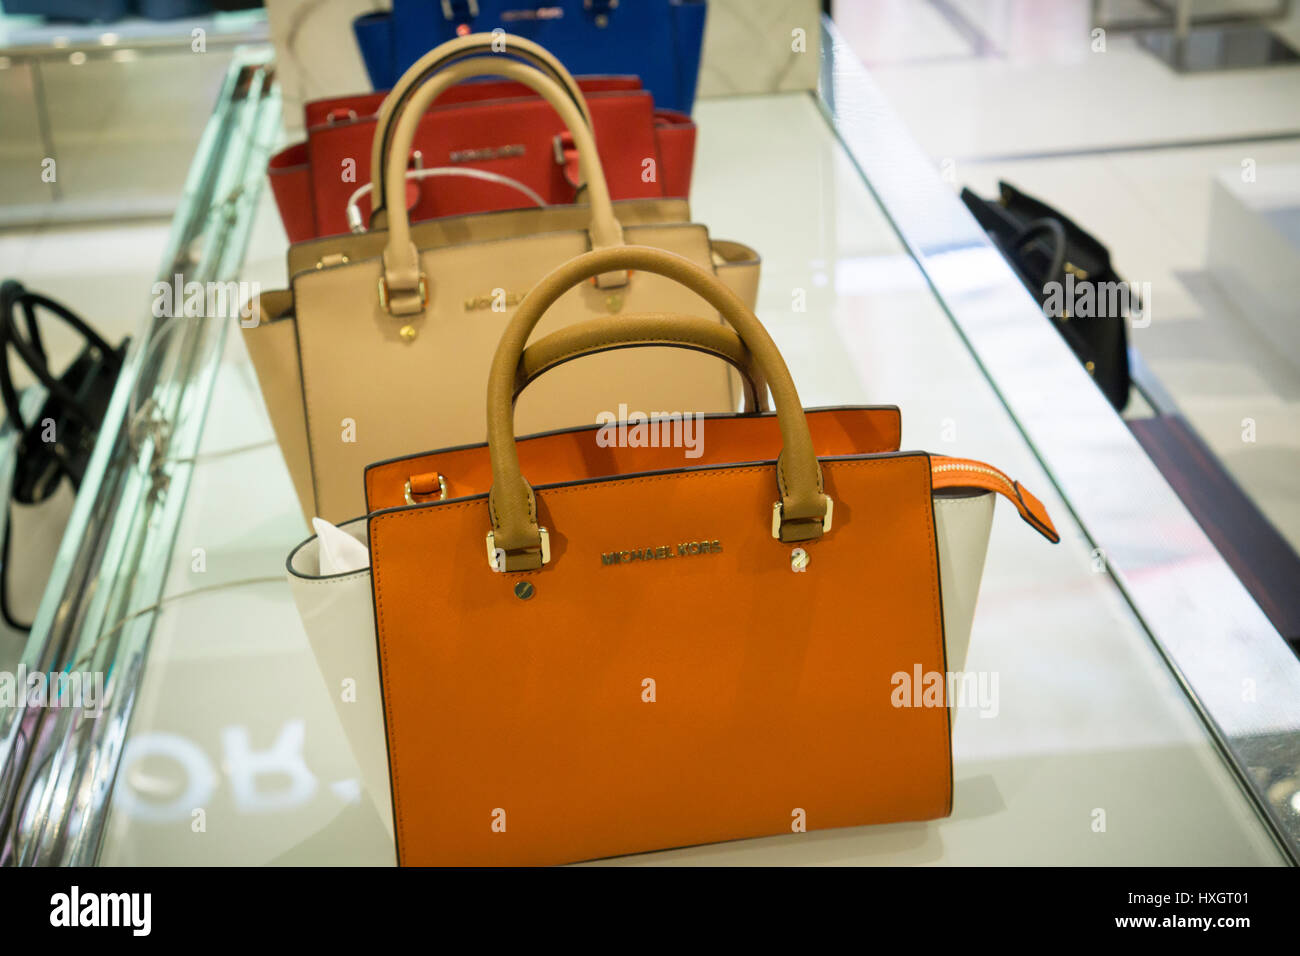 44de712dcf3b Michael Kors handbags in the Macy's Herald Square flagship store on Sunday,  March 26,